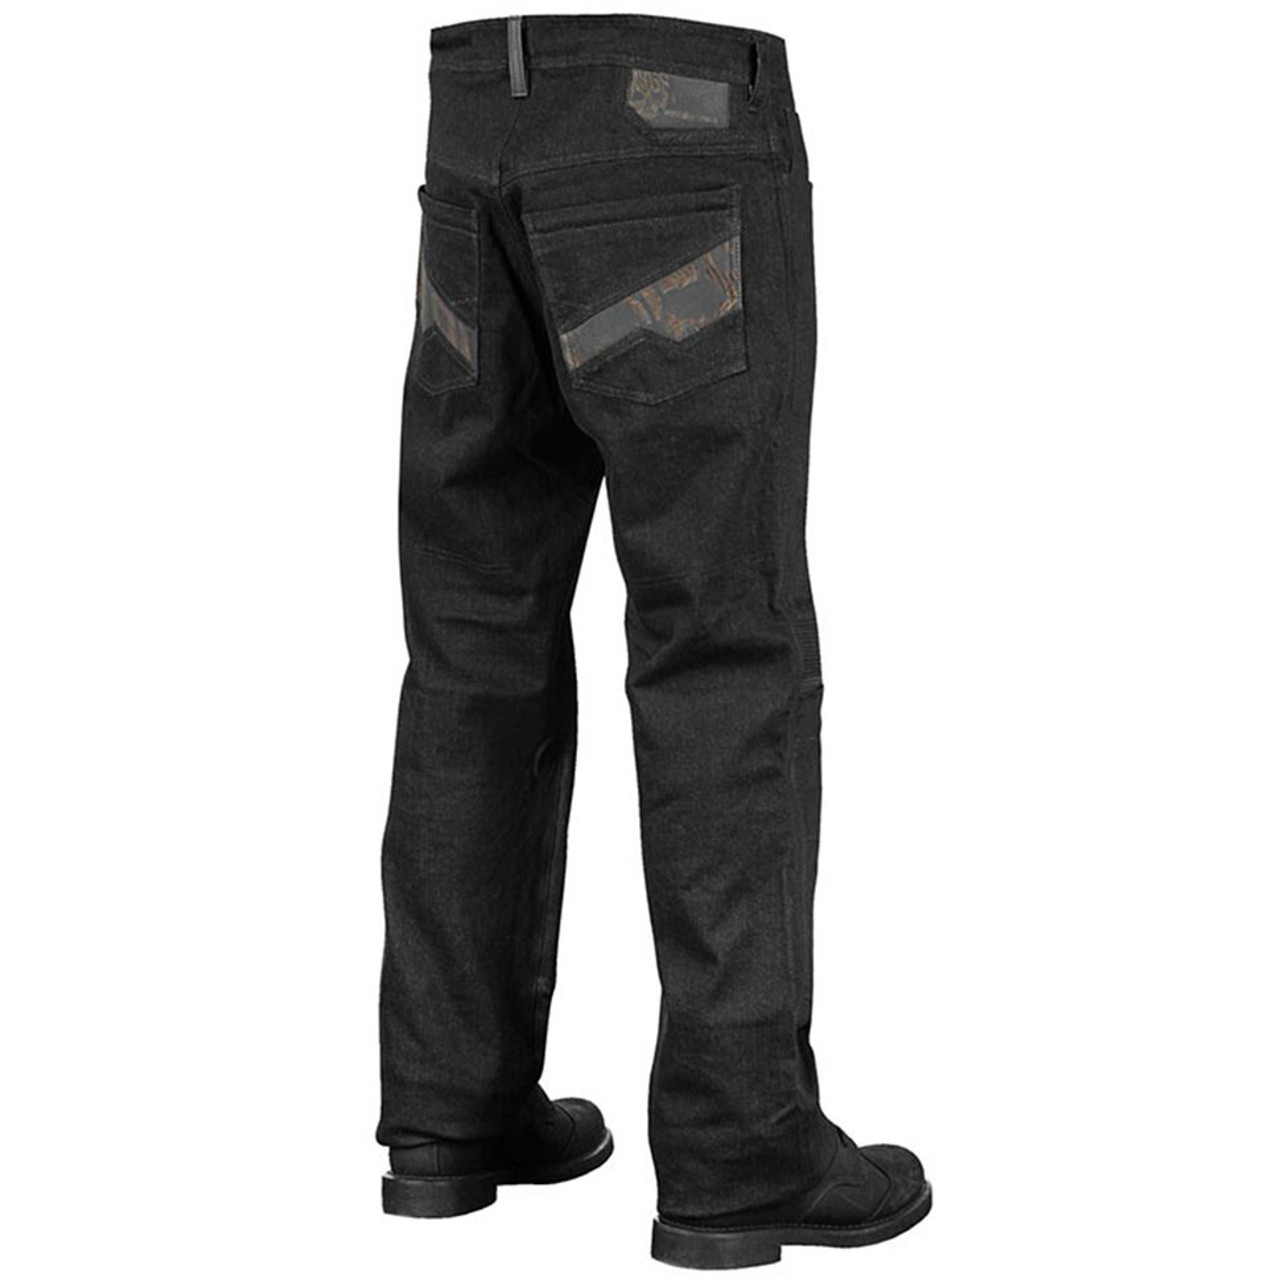 Black Speed /& Strength Insurgent Pant 34x30